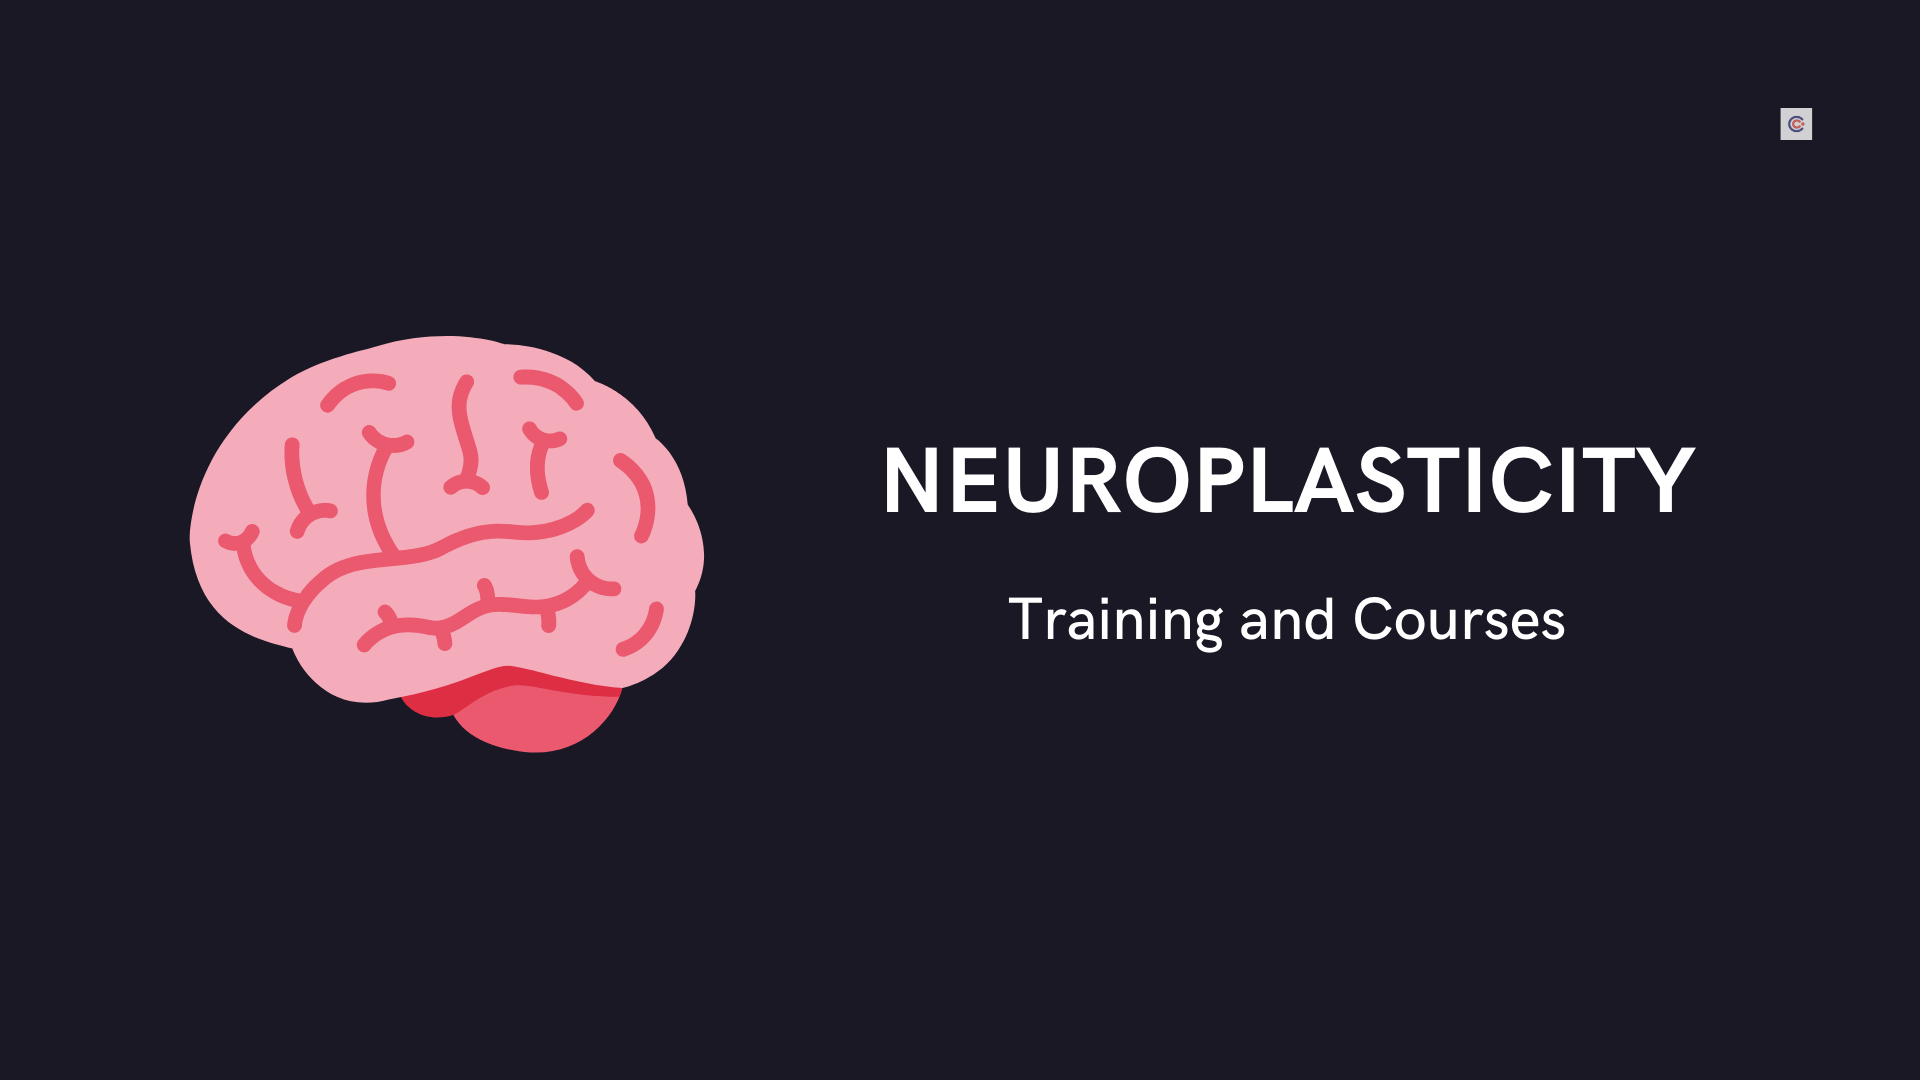 6 Best Neuroplasticity Training and Courses - Learn Neuroplasticity Online